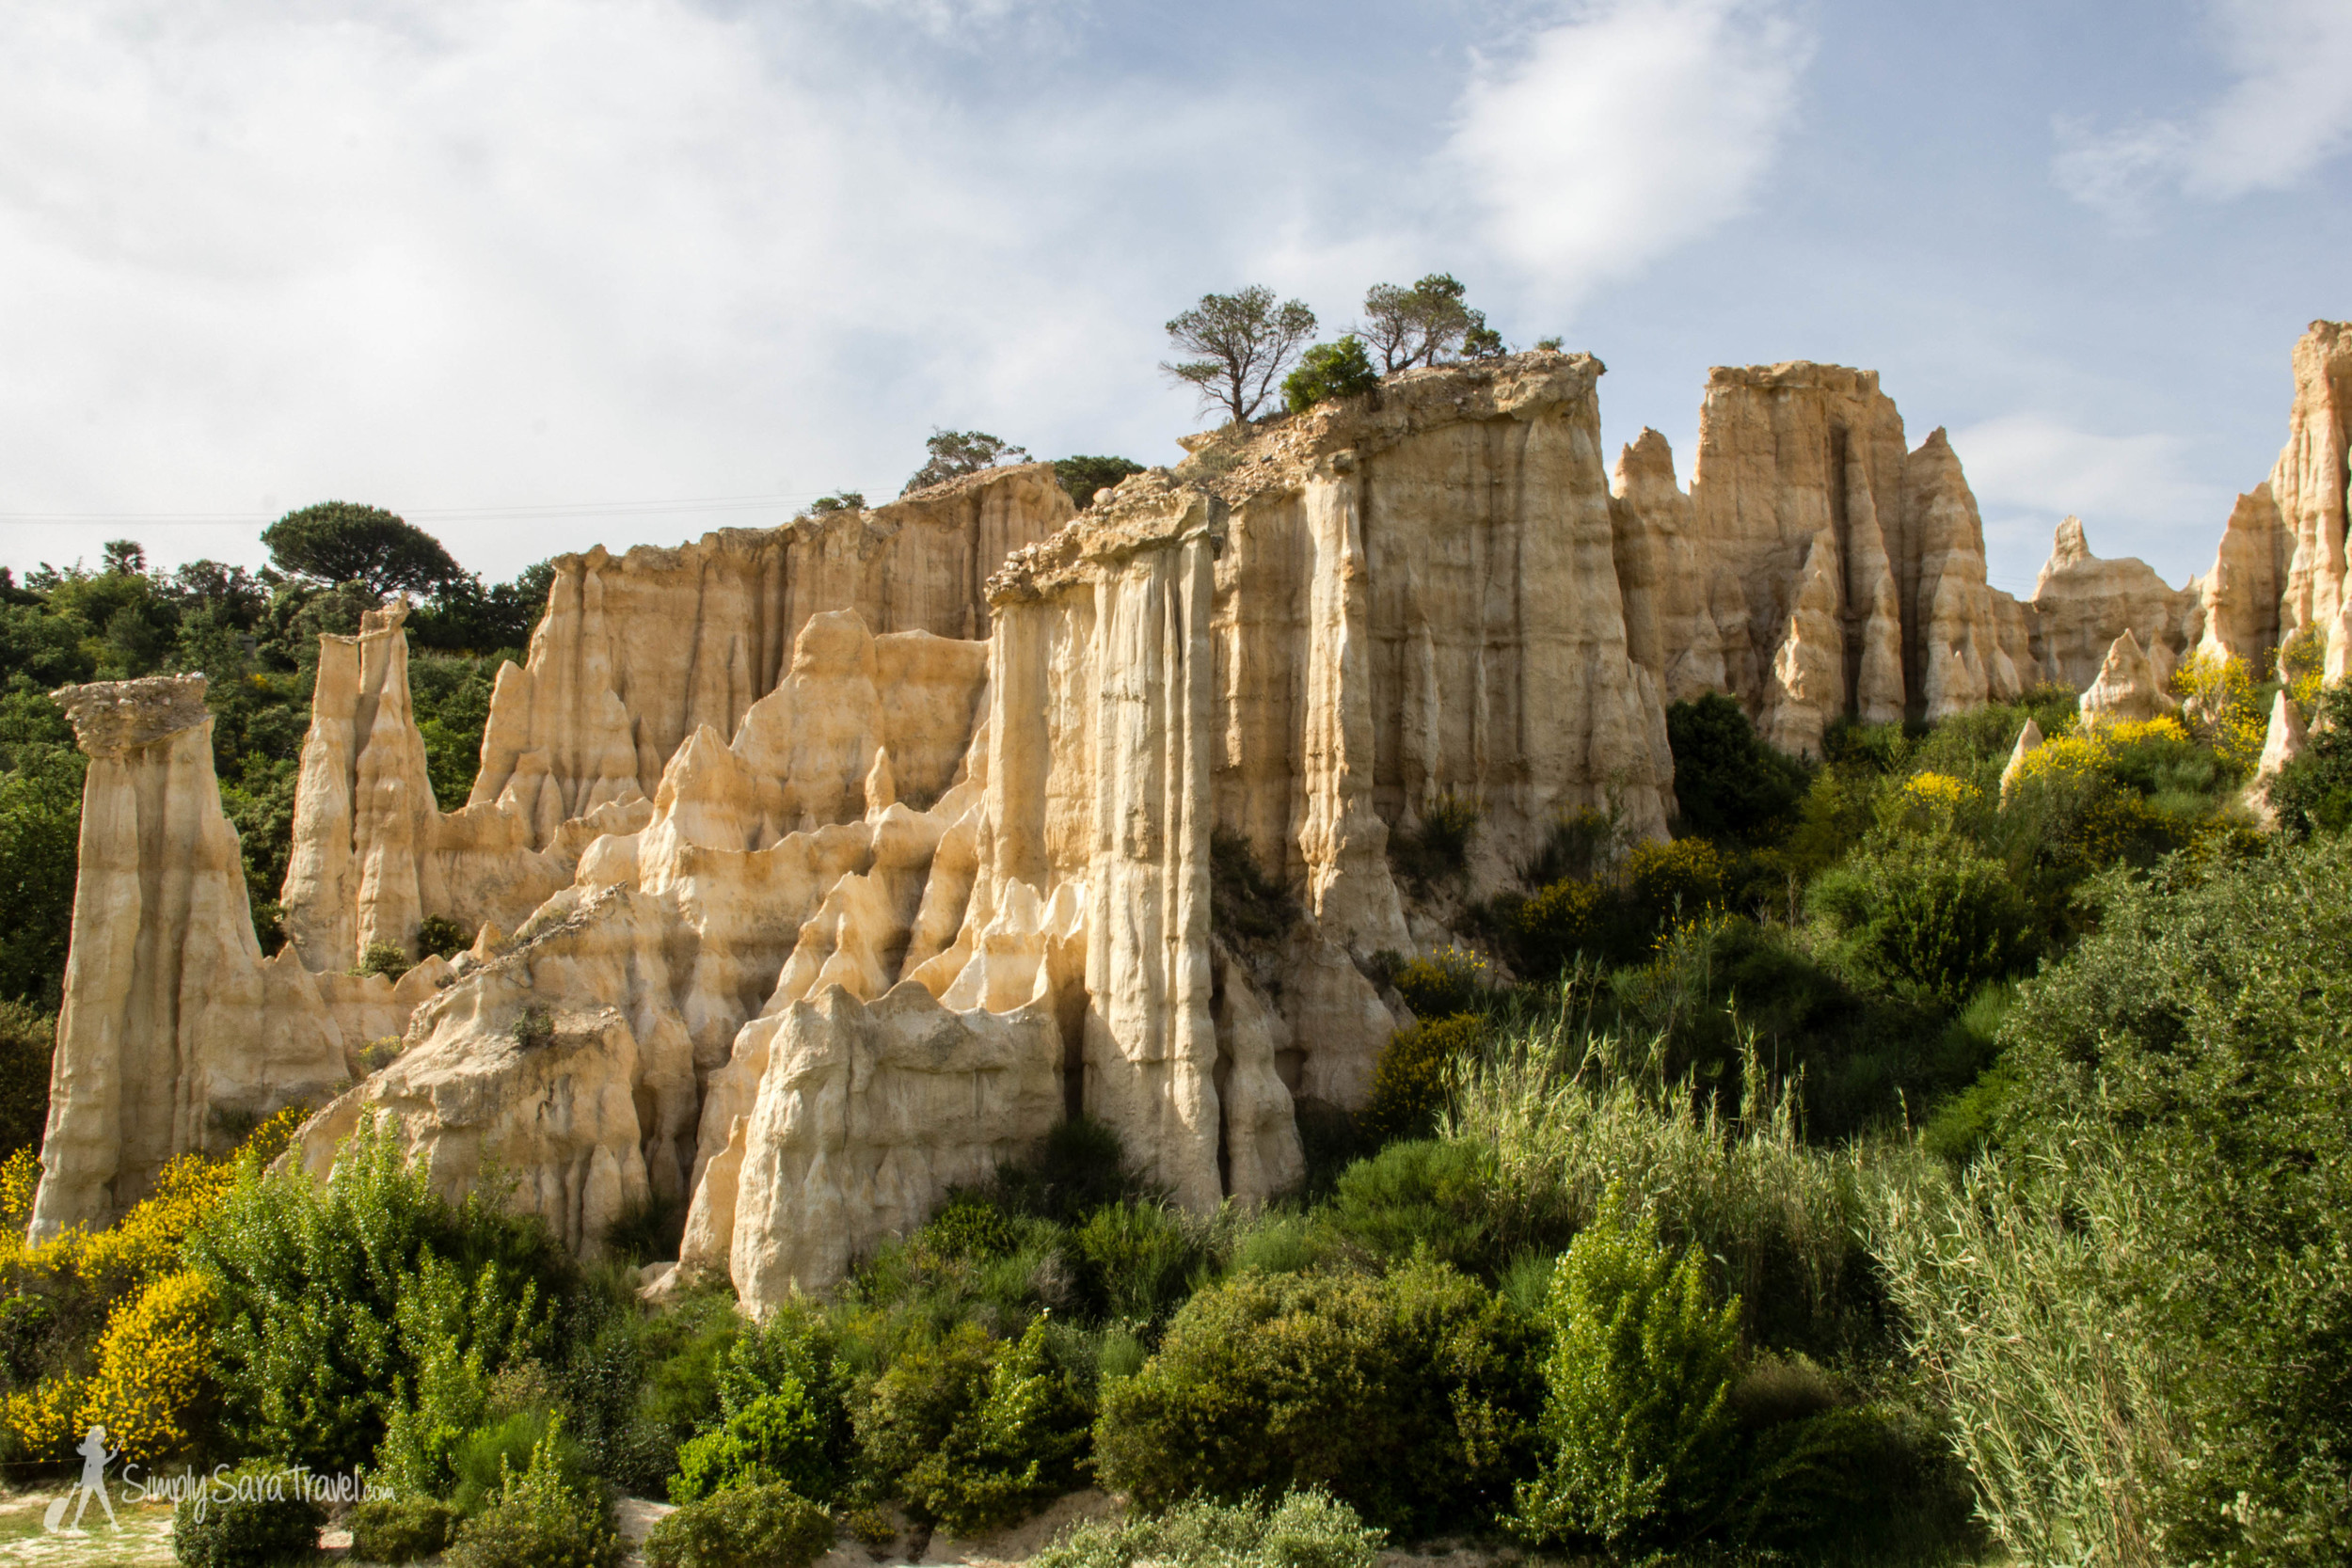 Can you believe this exists in France? It looks a bit like Utah's Bryce Canyon, but this is Les Orgues d'Ille-sur-Têt, over in Languedoc.